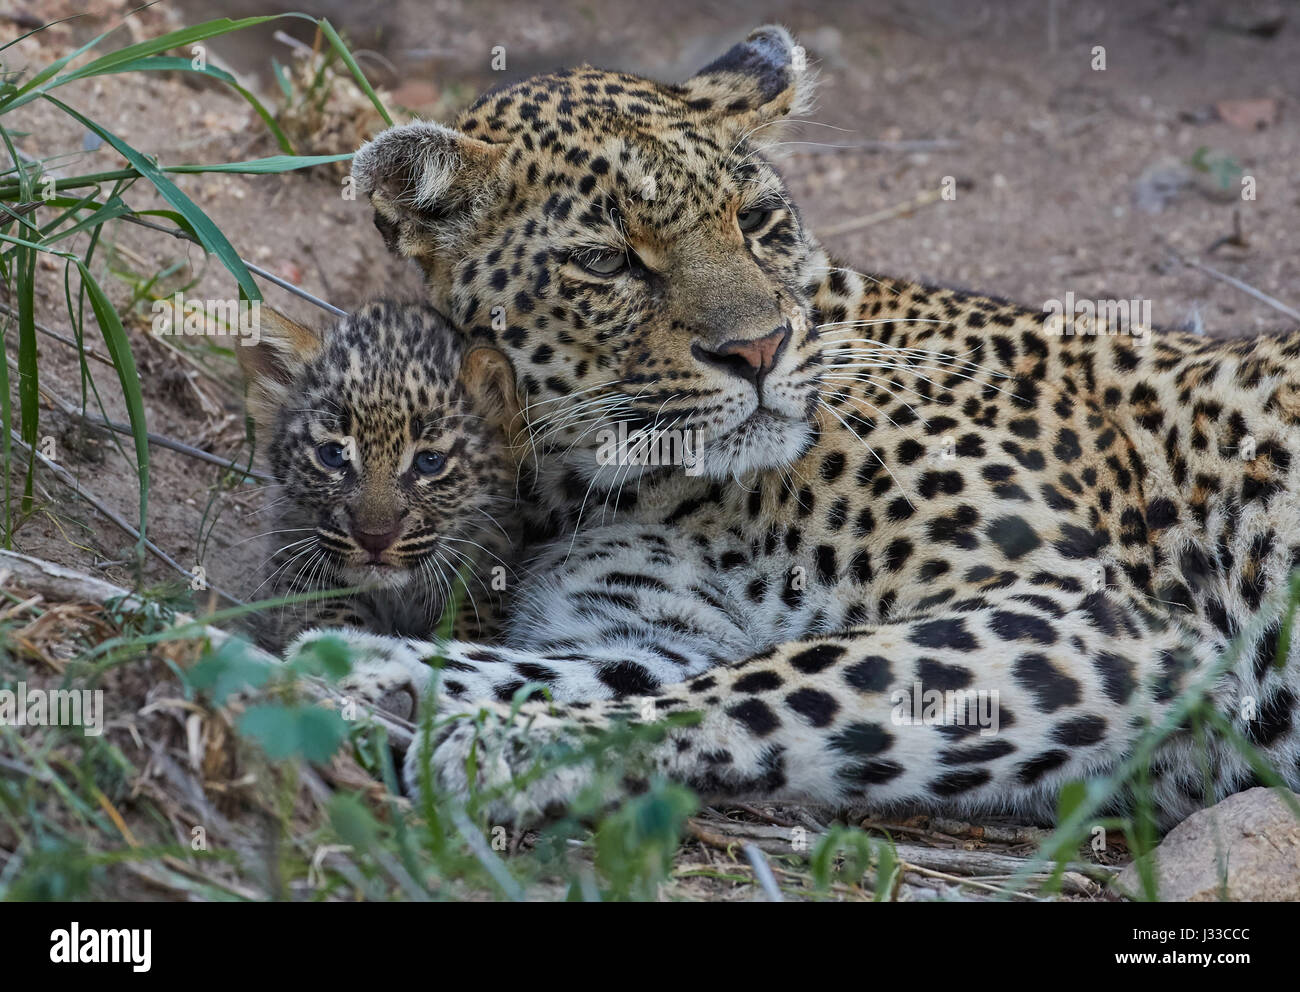 Leopard with young cub in Krueger National park, South Africa, Africa - Stock Image